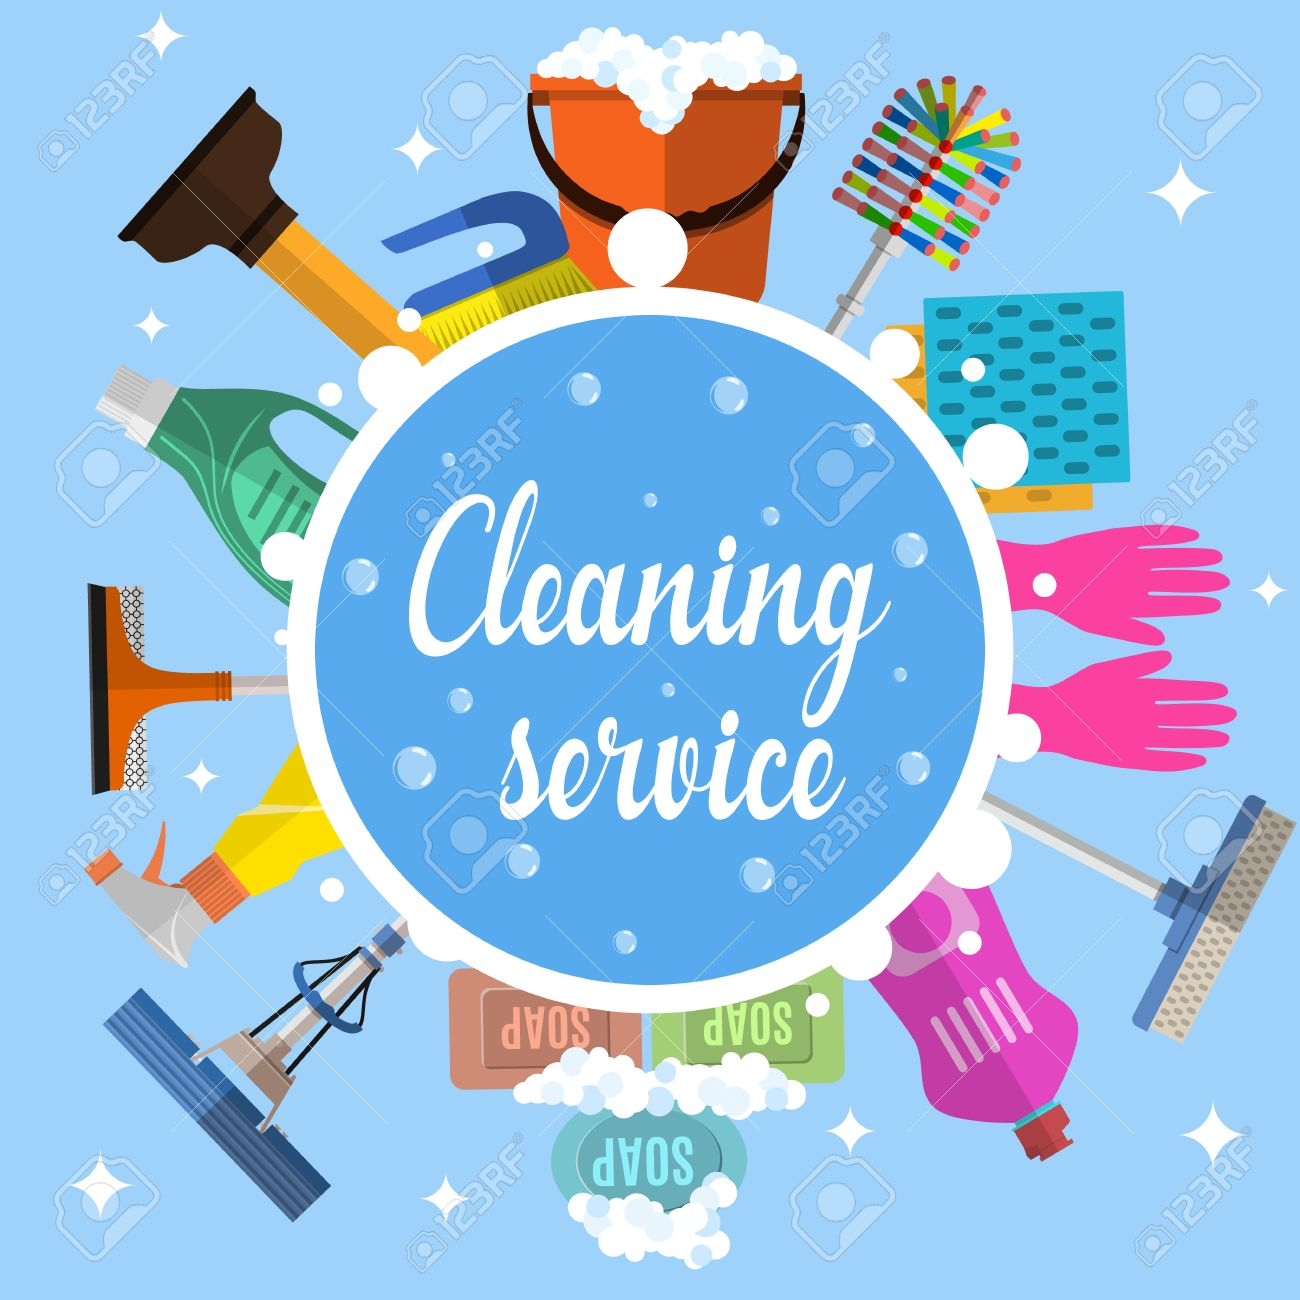 Cleaning service flat illustration » Clipart Station.